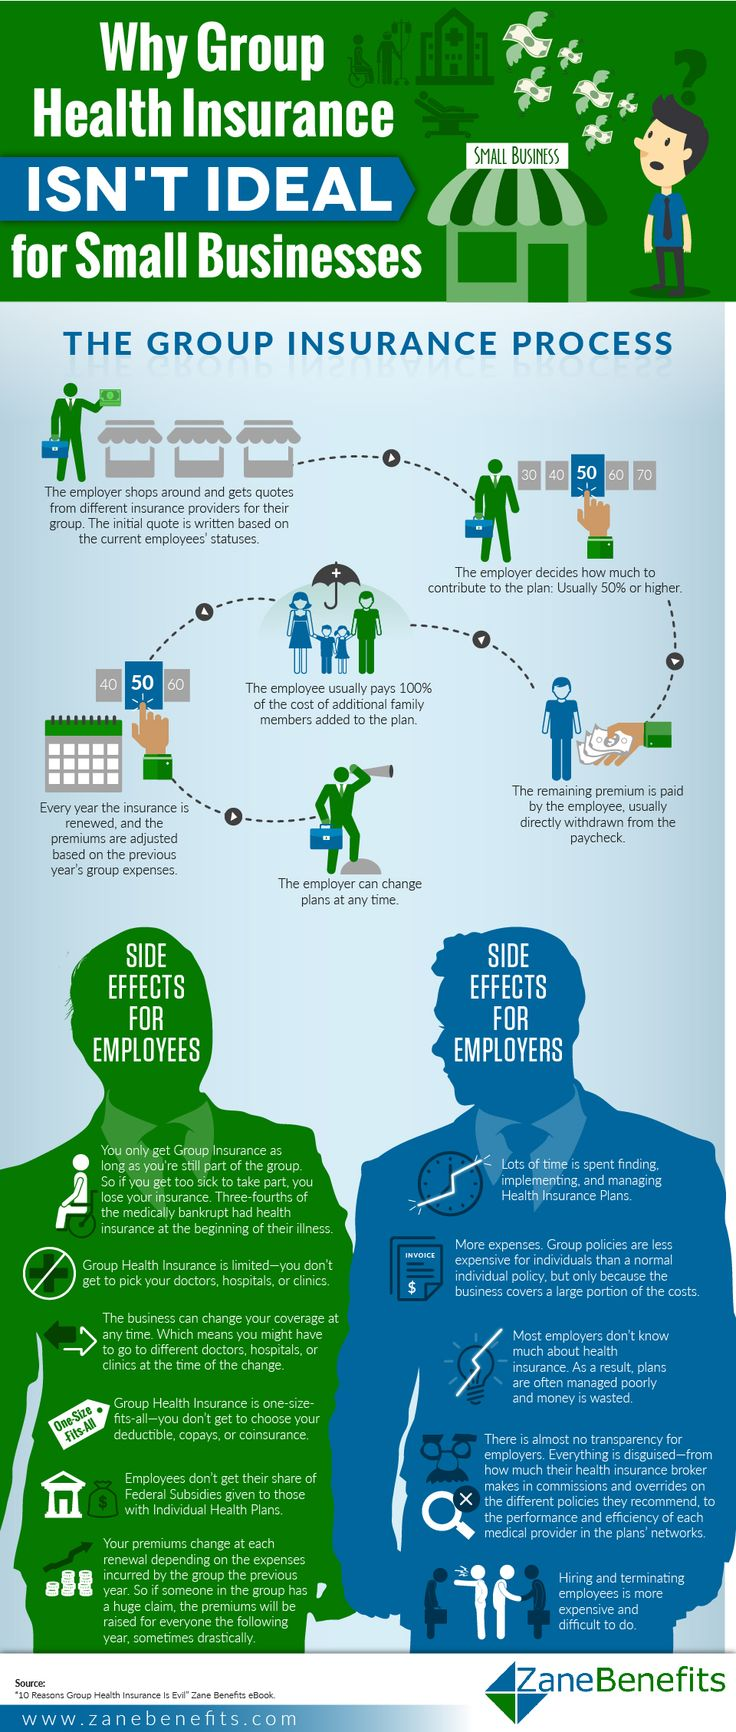 Why Group Health Insurance Isn't Ideal for Small Businesses - Infographic